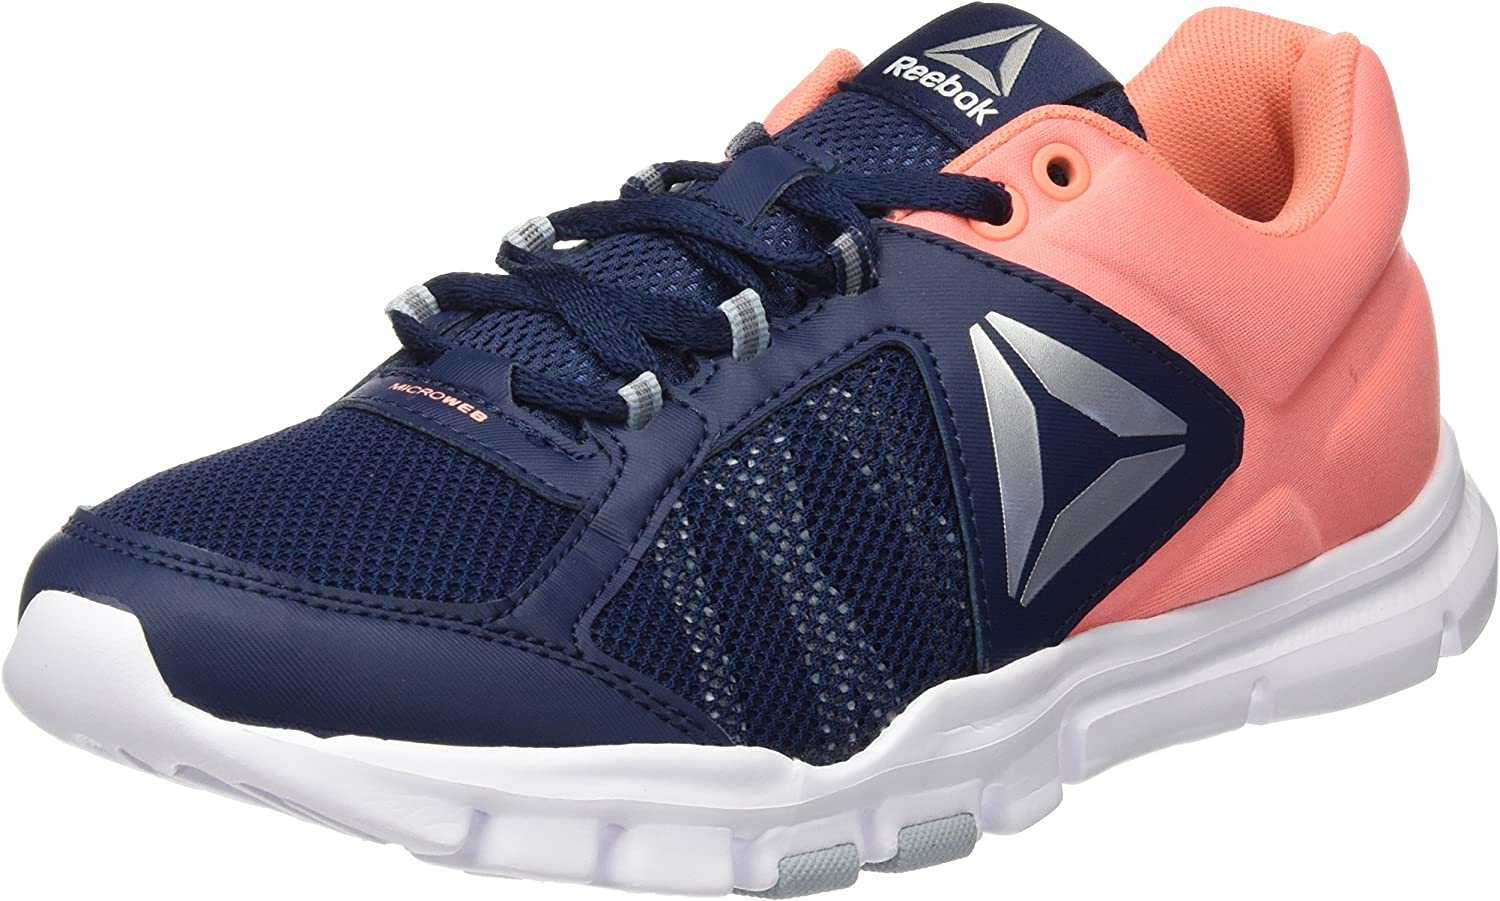 REEBOK LADIES YOURFLEX Trainette 9.0 MT